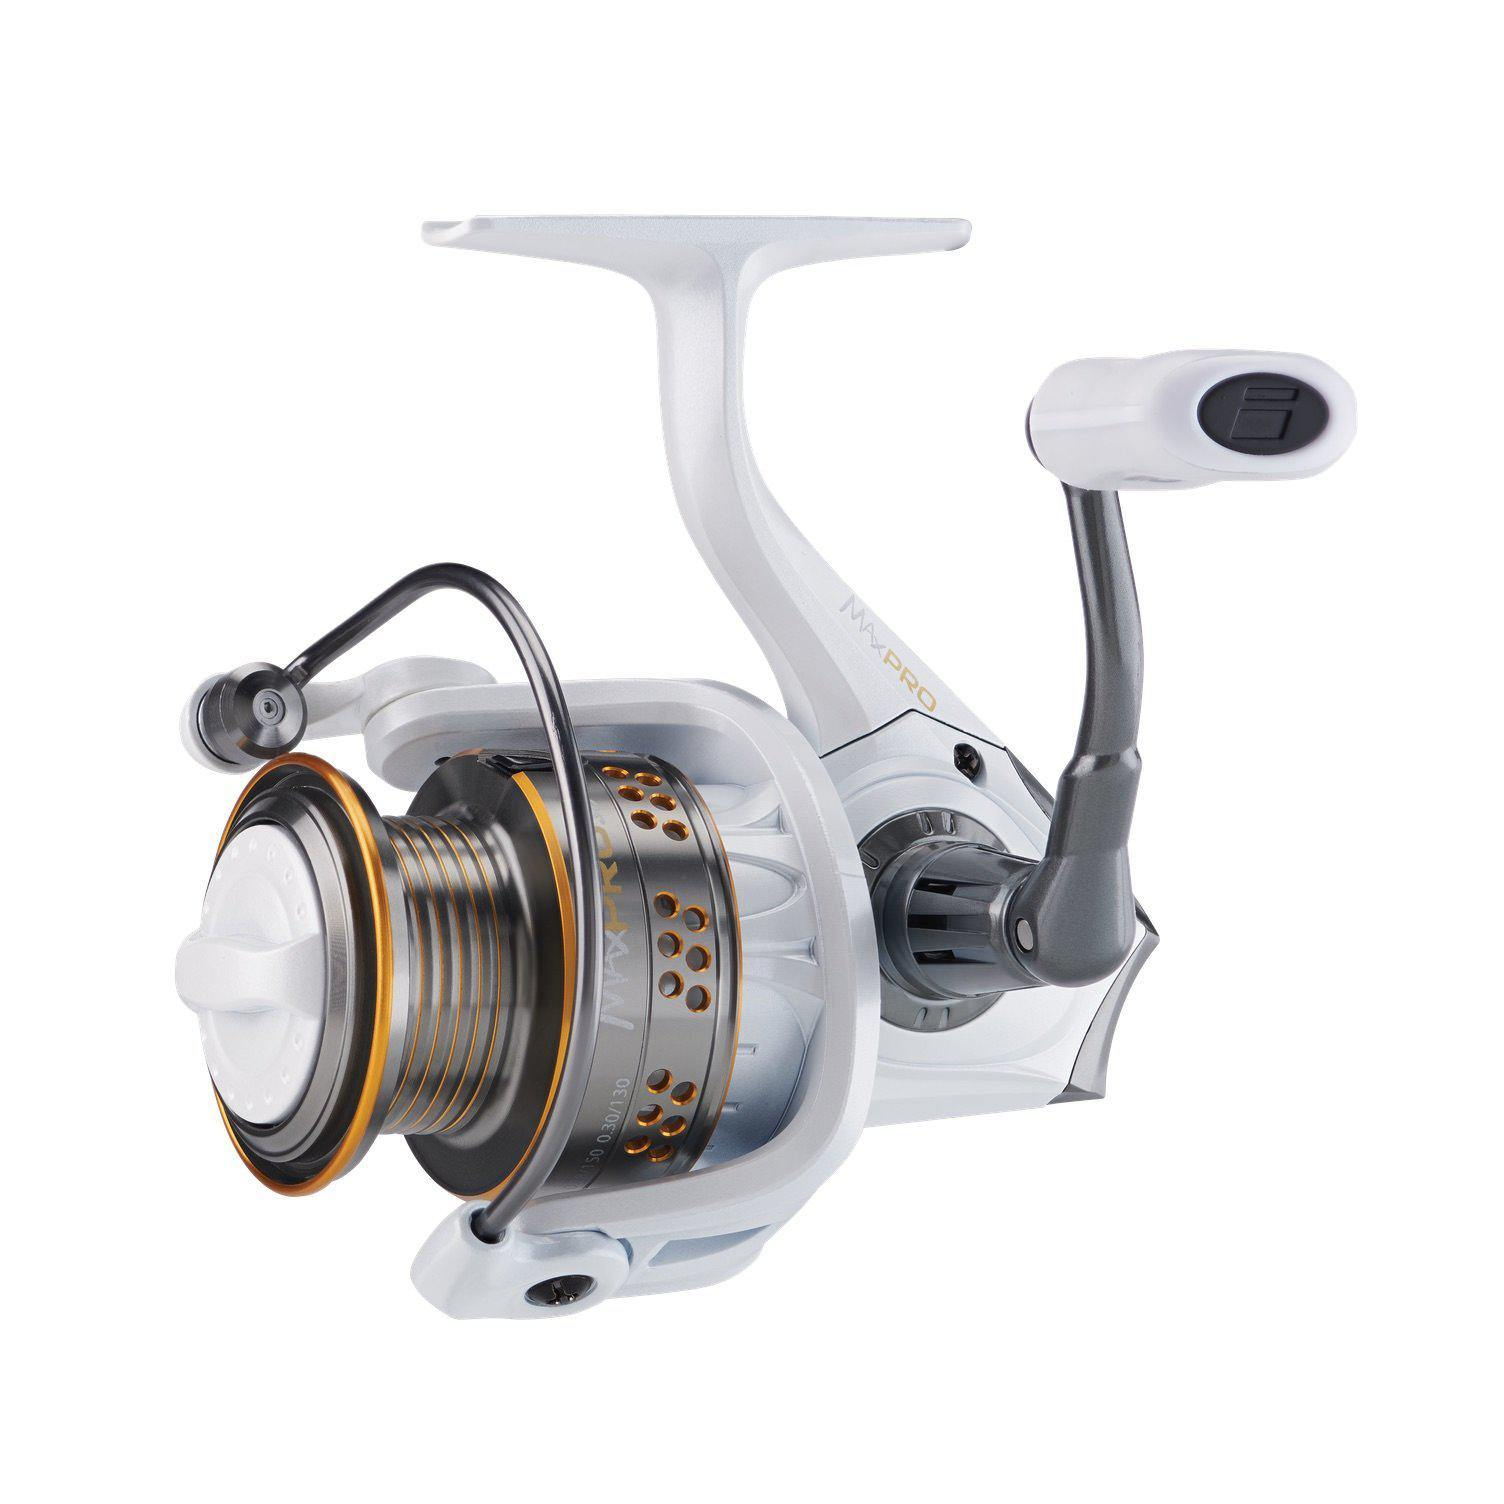 Abu Garcia Max Pro Spin Fishing Reel - Reels - Spin | Addict Tackle